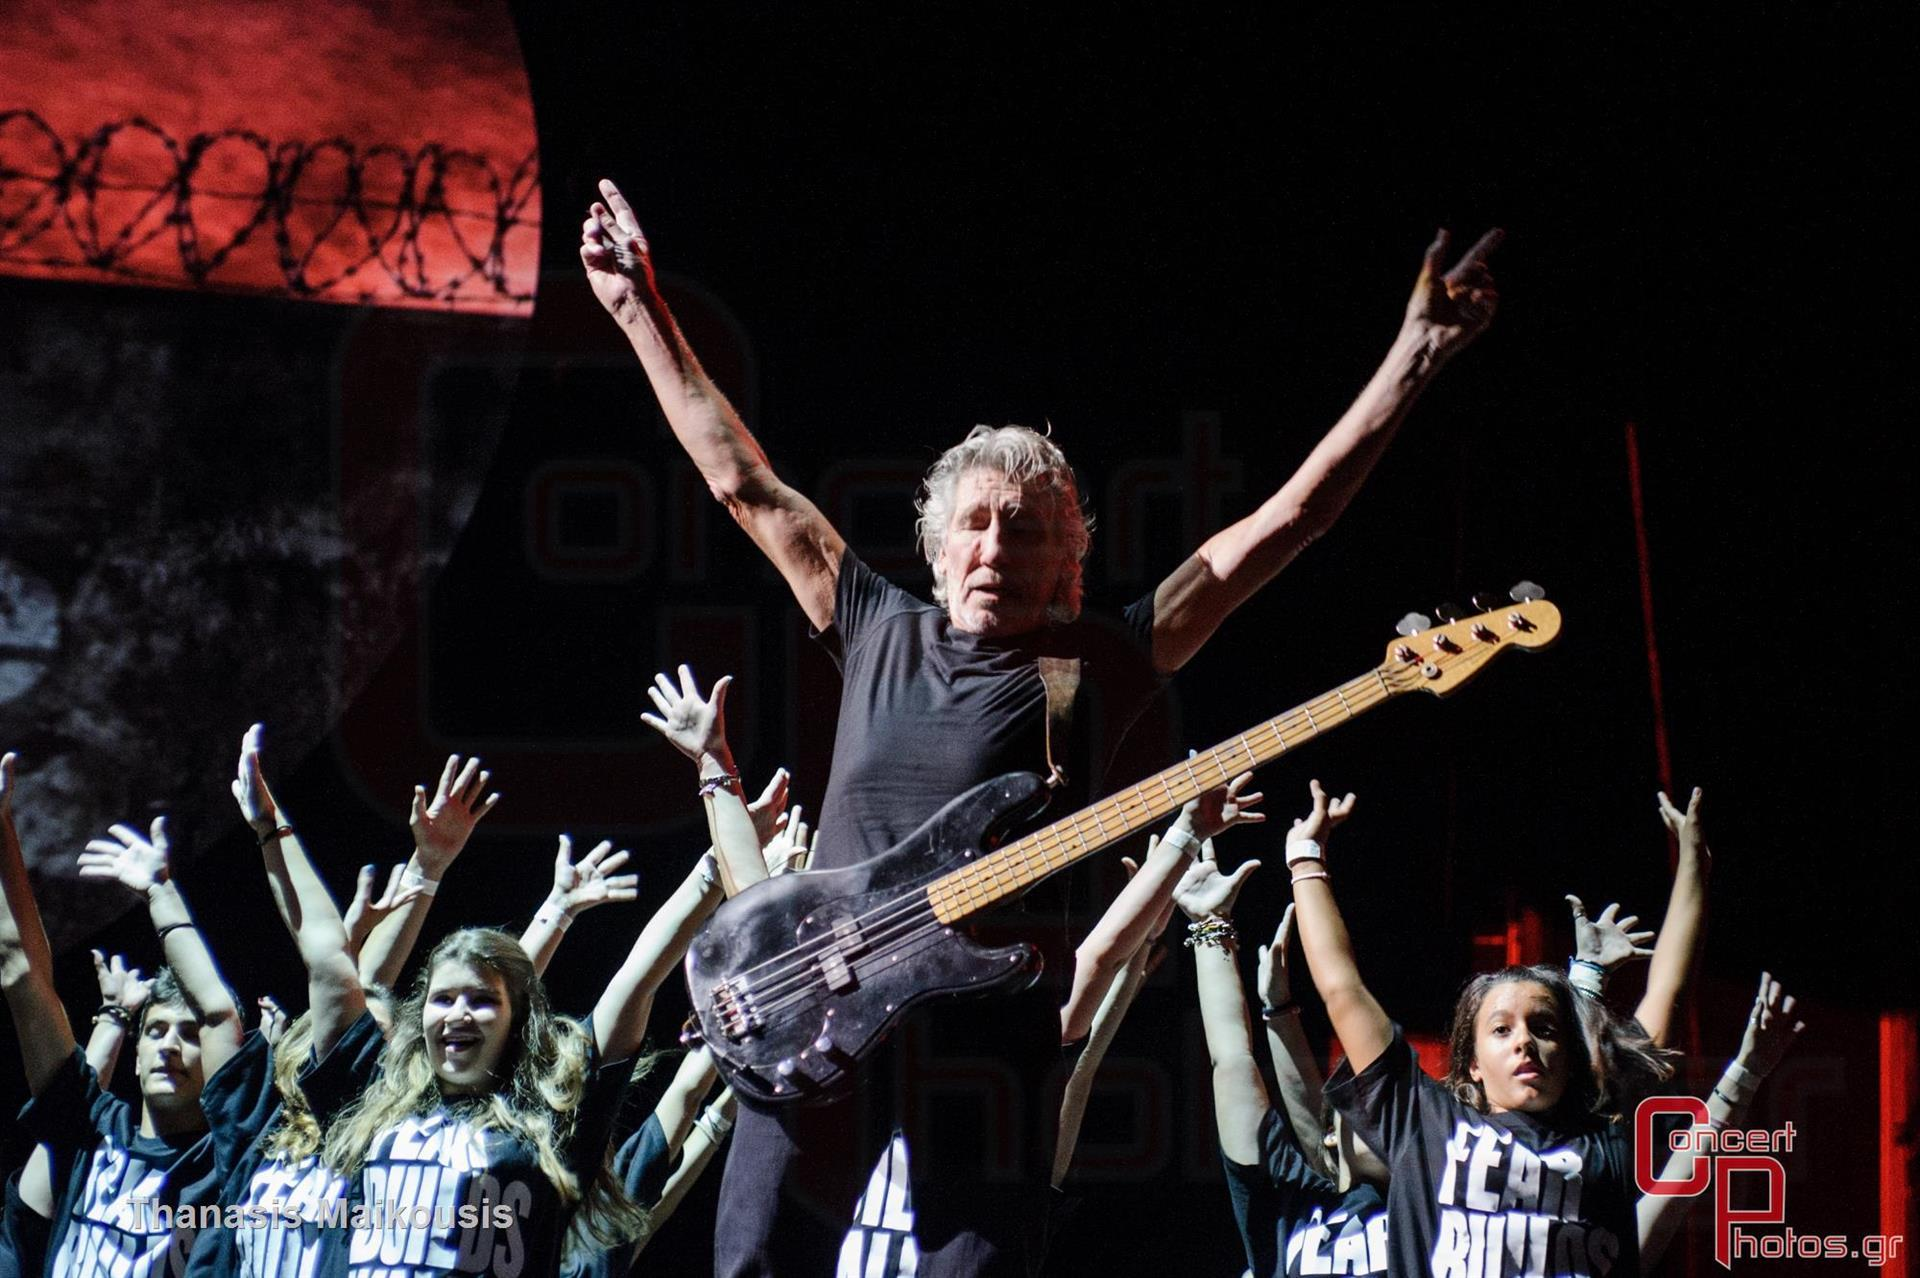 Roger Waters - The Wall-Roger Waters The Wall 2013 Athens Olympic Stadium photographer: Thanasis Maikousis - concertphotos_-2609